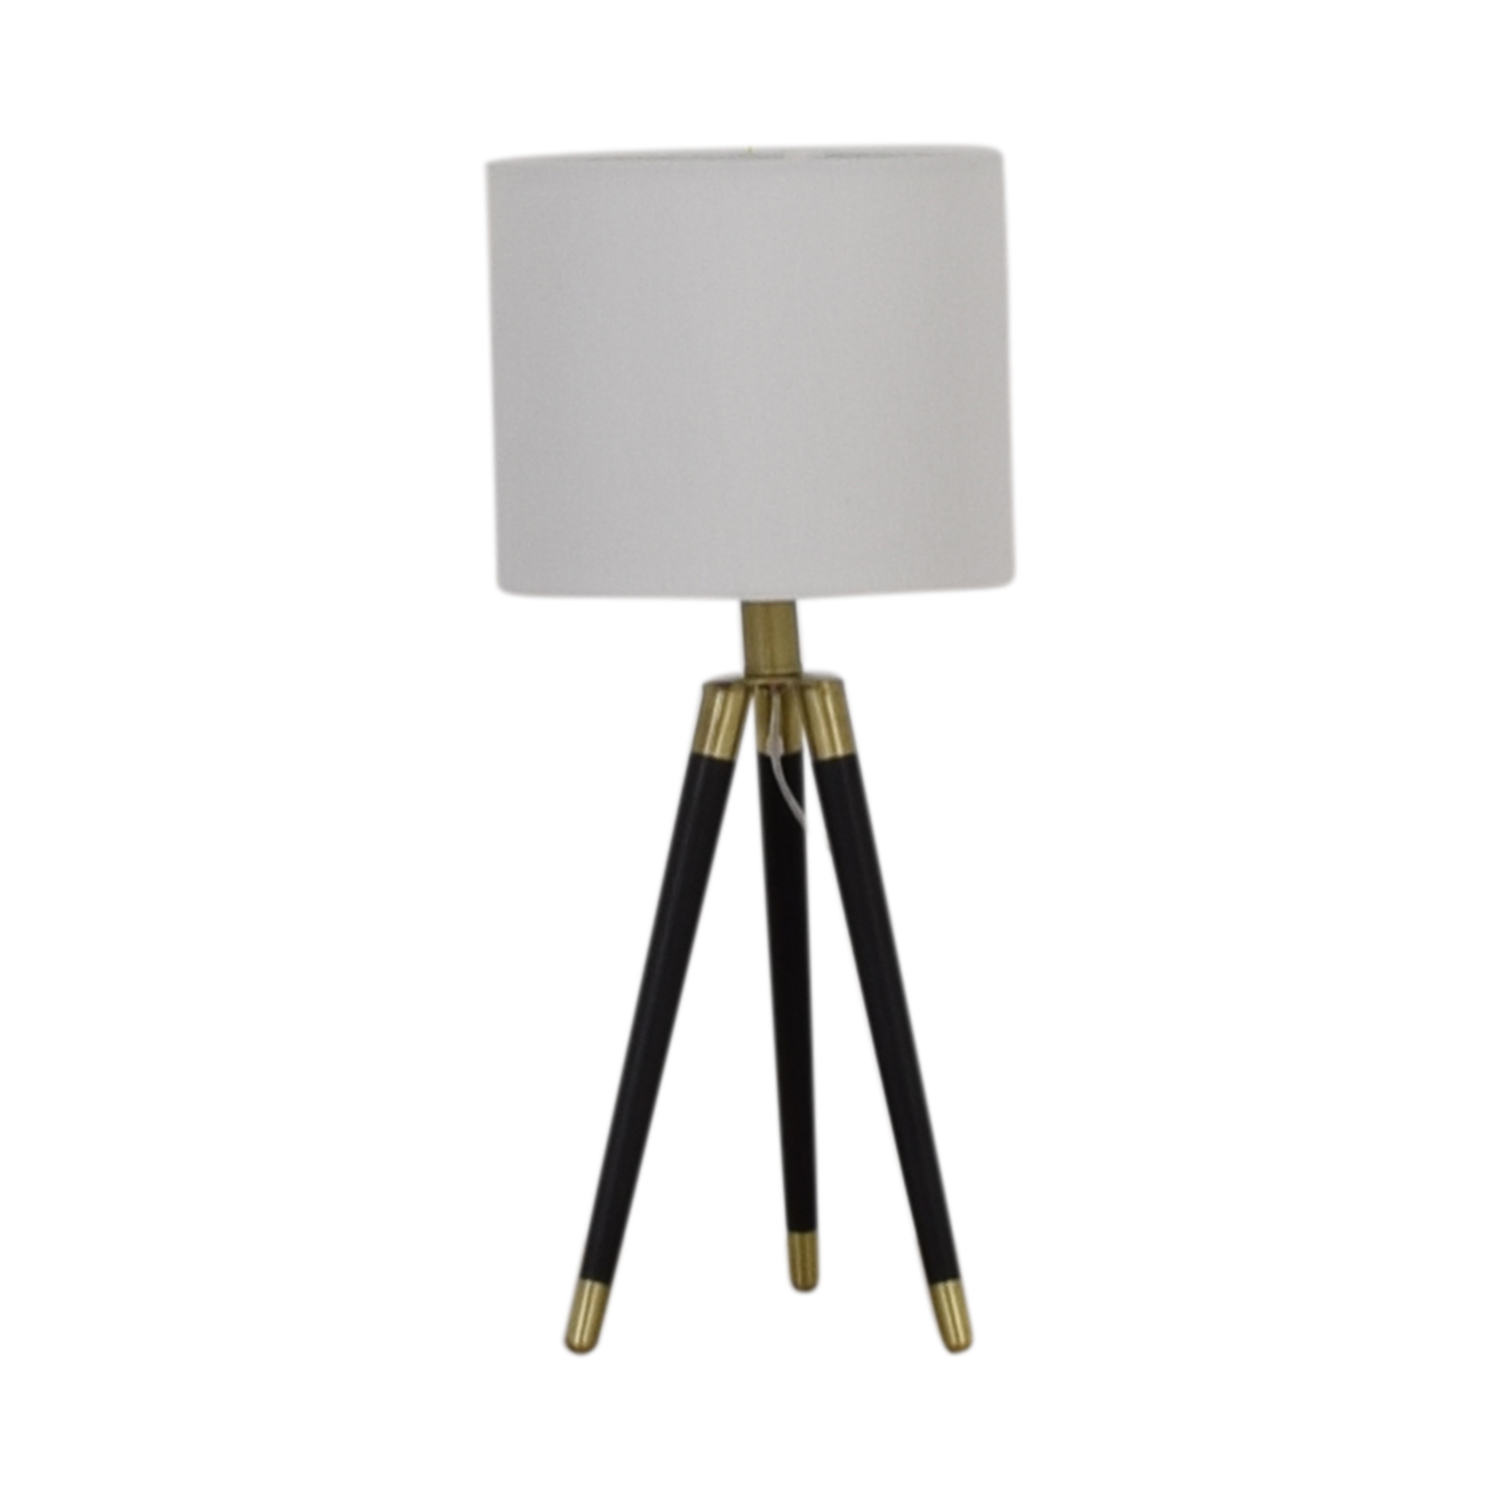 StyleCraft StyleCraft Tripod Table Lamp For Sale